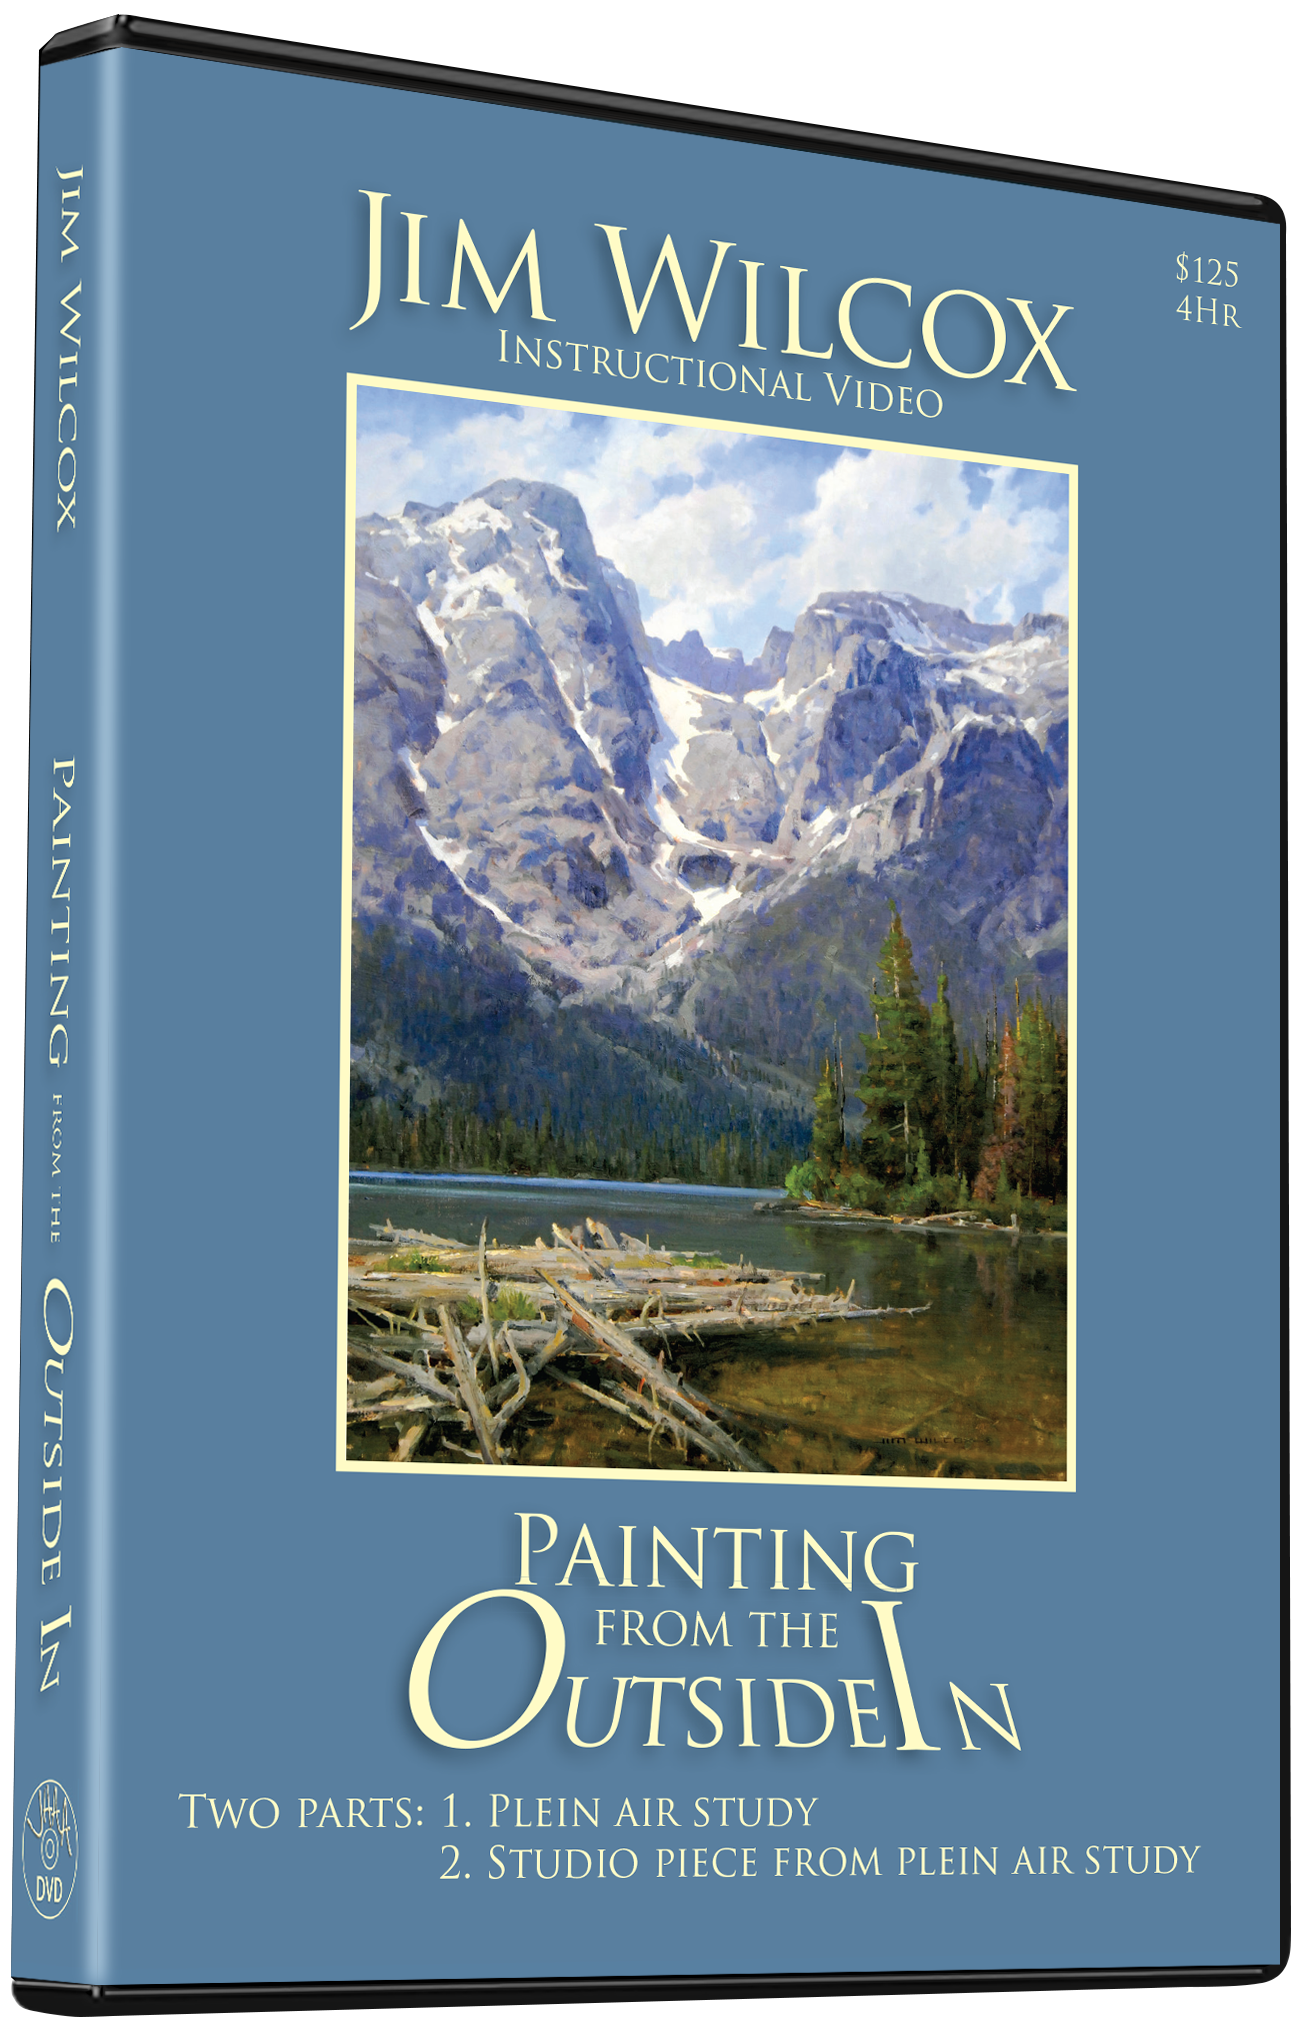 Jim Wilcox: Painting from the Outside In